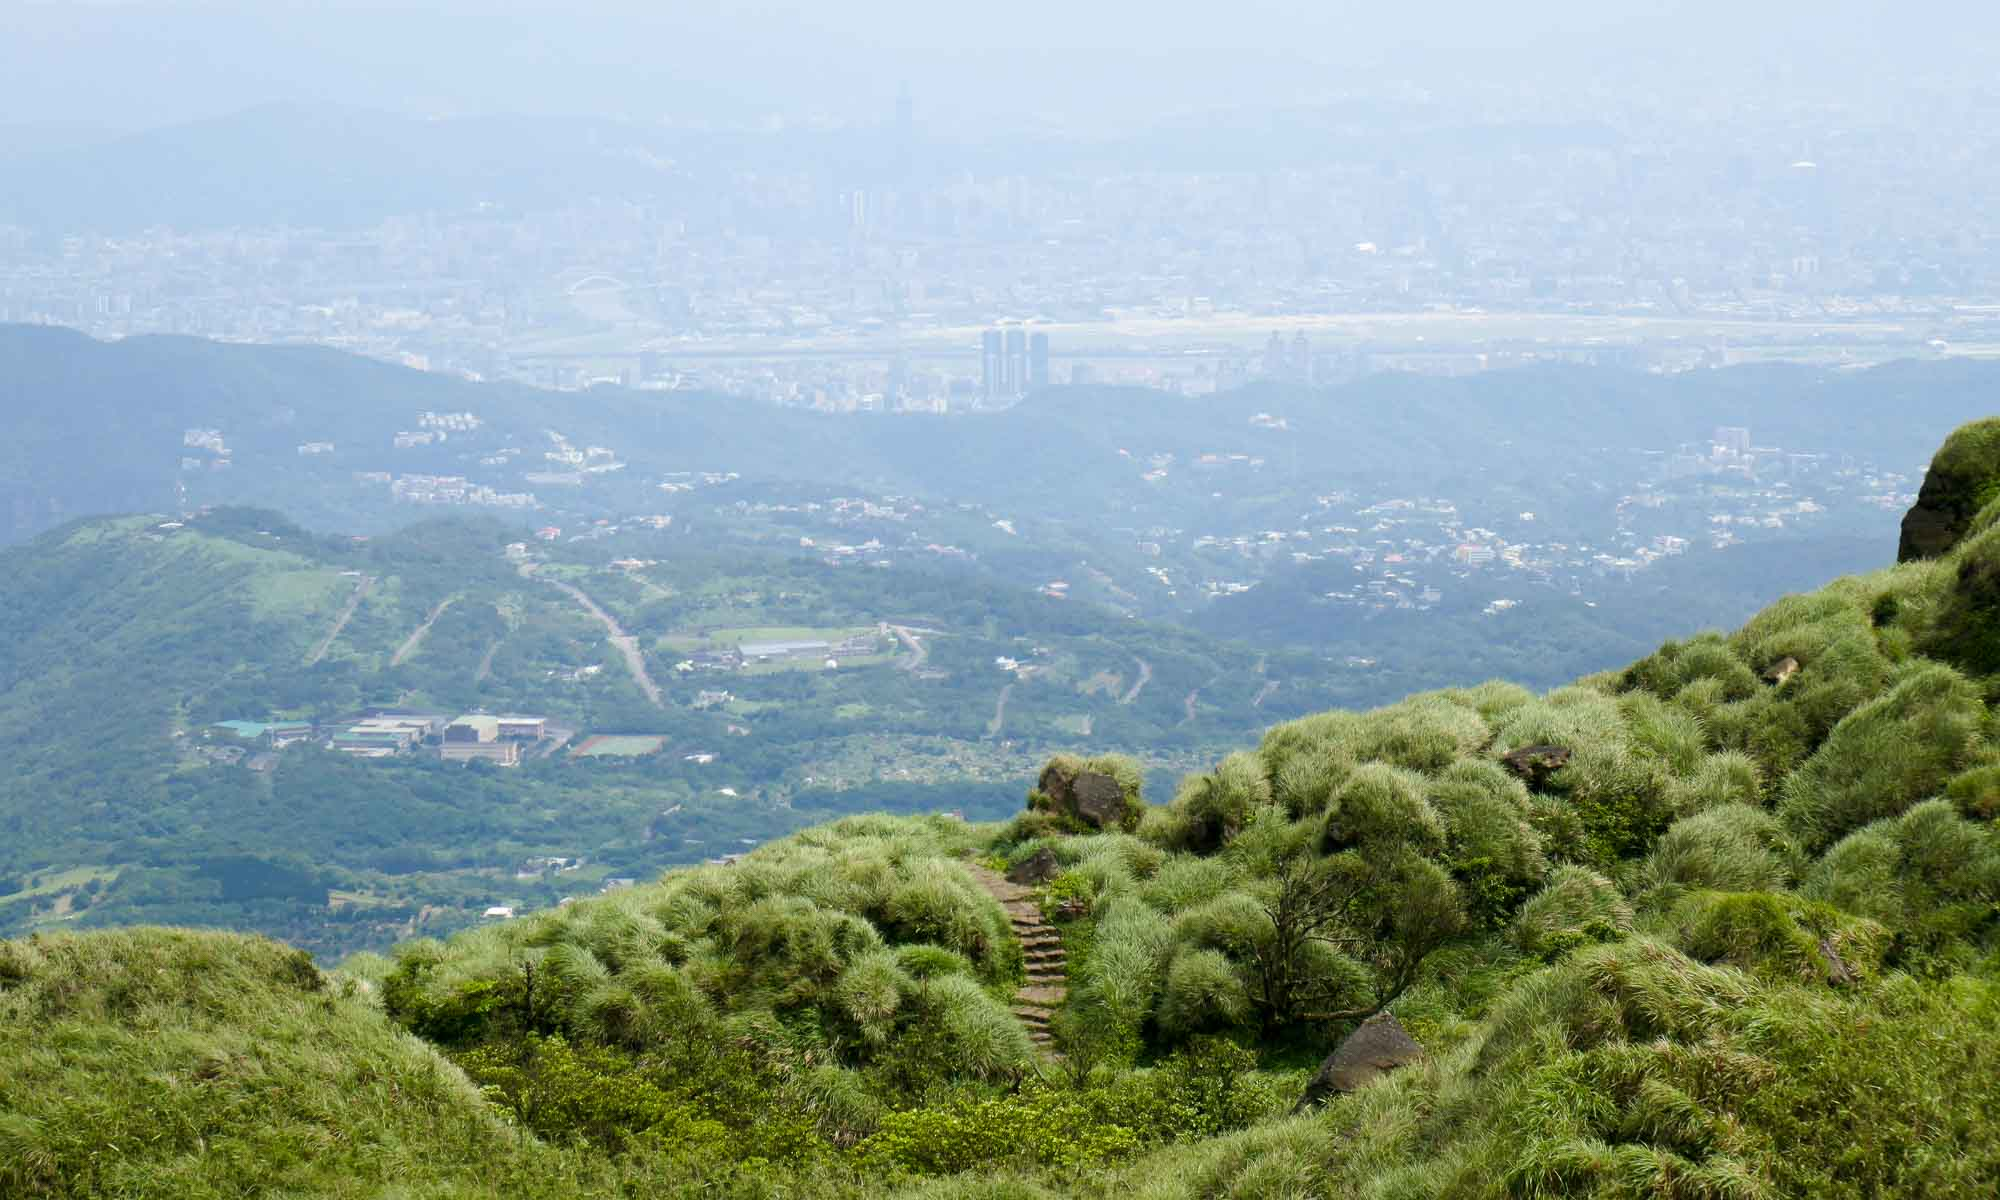 View of Taipei from Mount Qixing